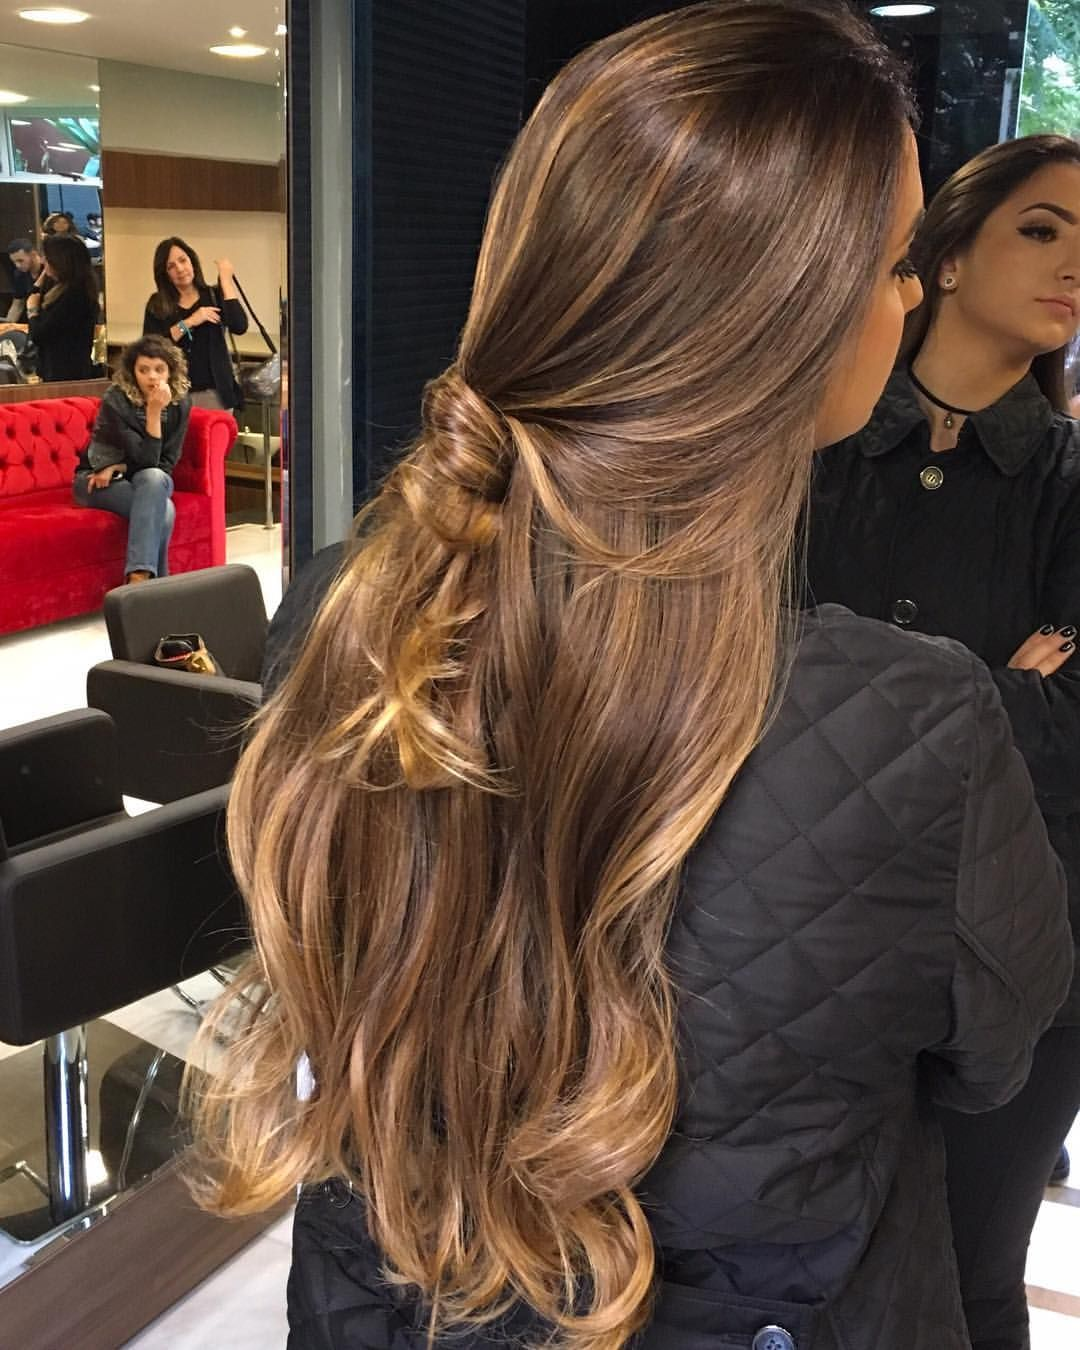 Castanho iluminadoblondhair ombre top_cabelosbr newhairstyle  ombrehair